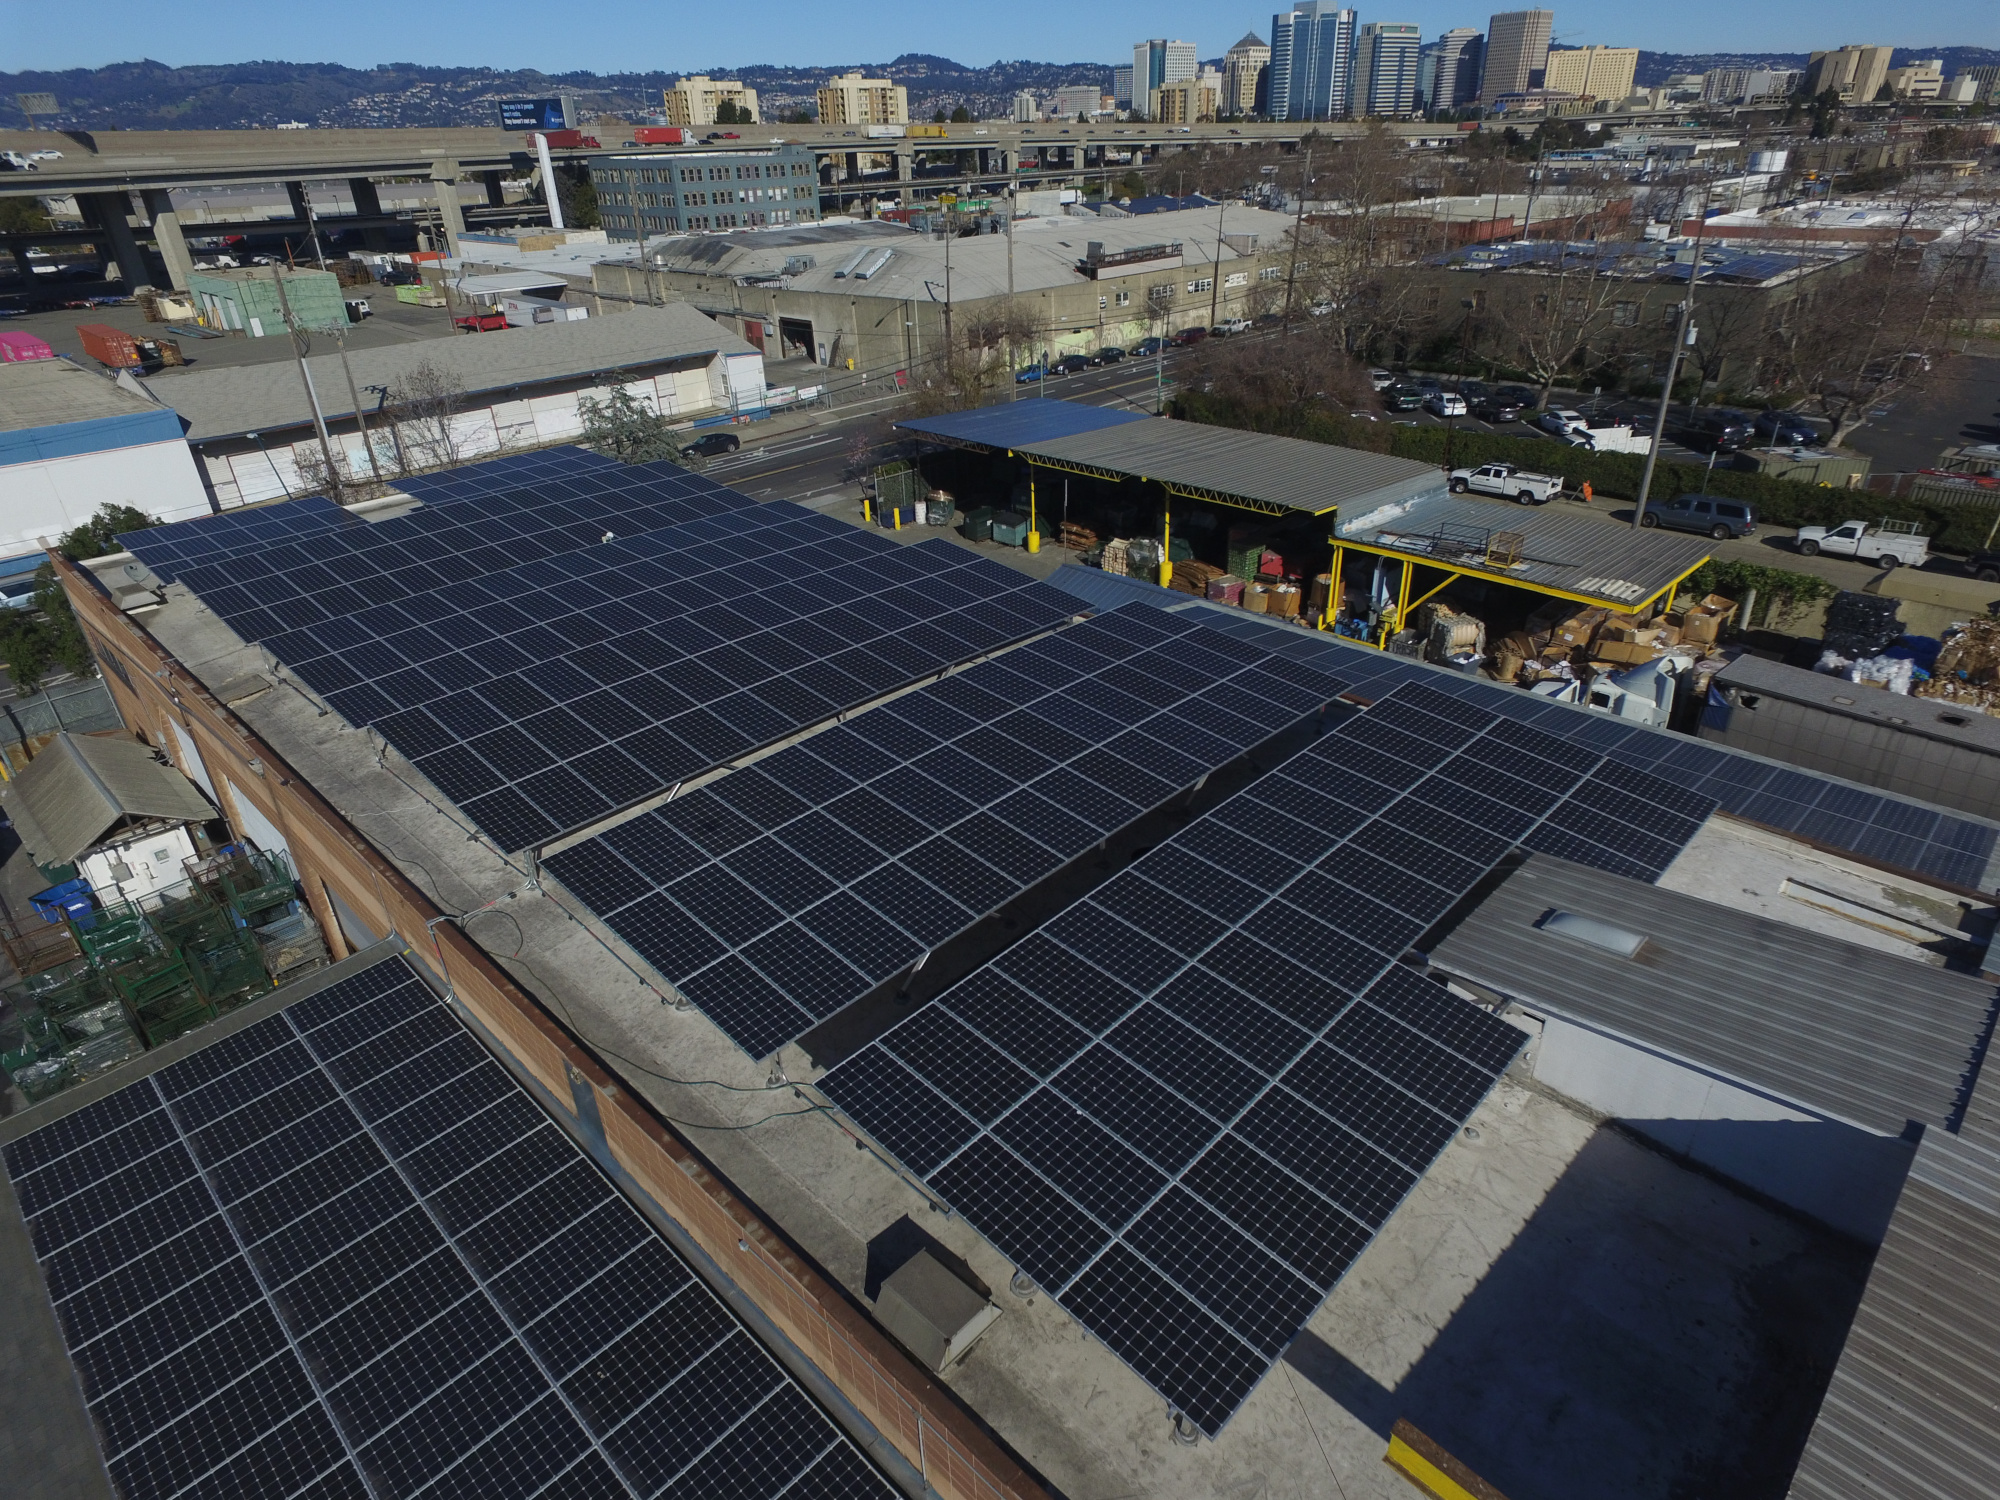 Aerial view of the commercial solar installation at Green Planet recycling center in Oakland, CA